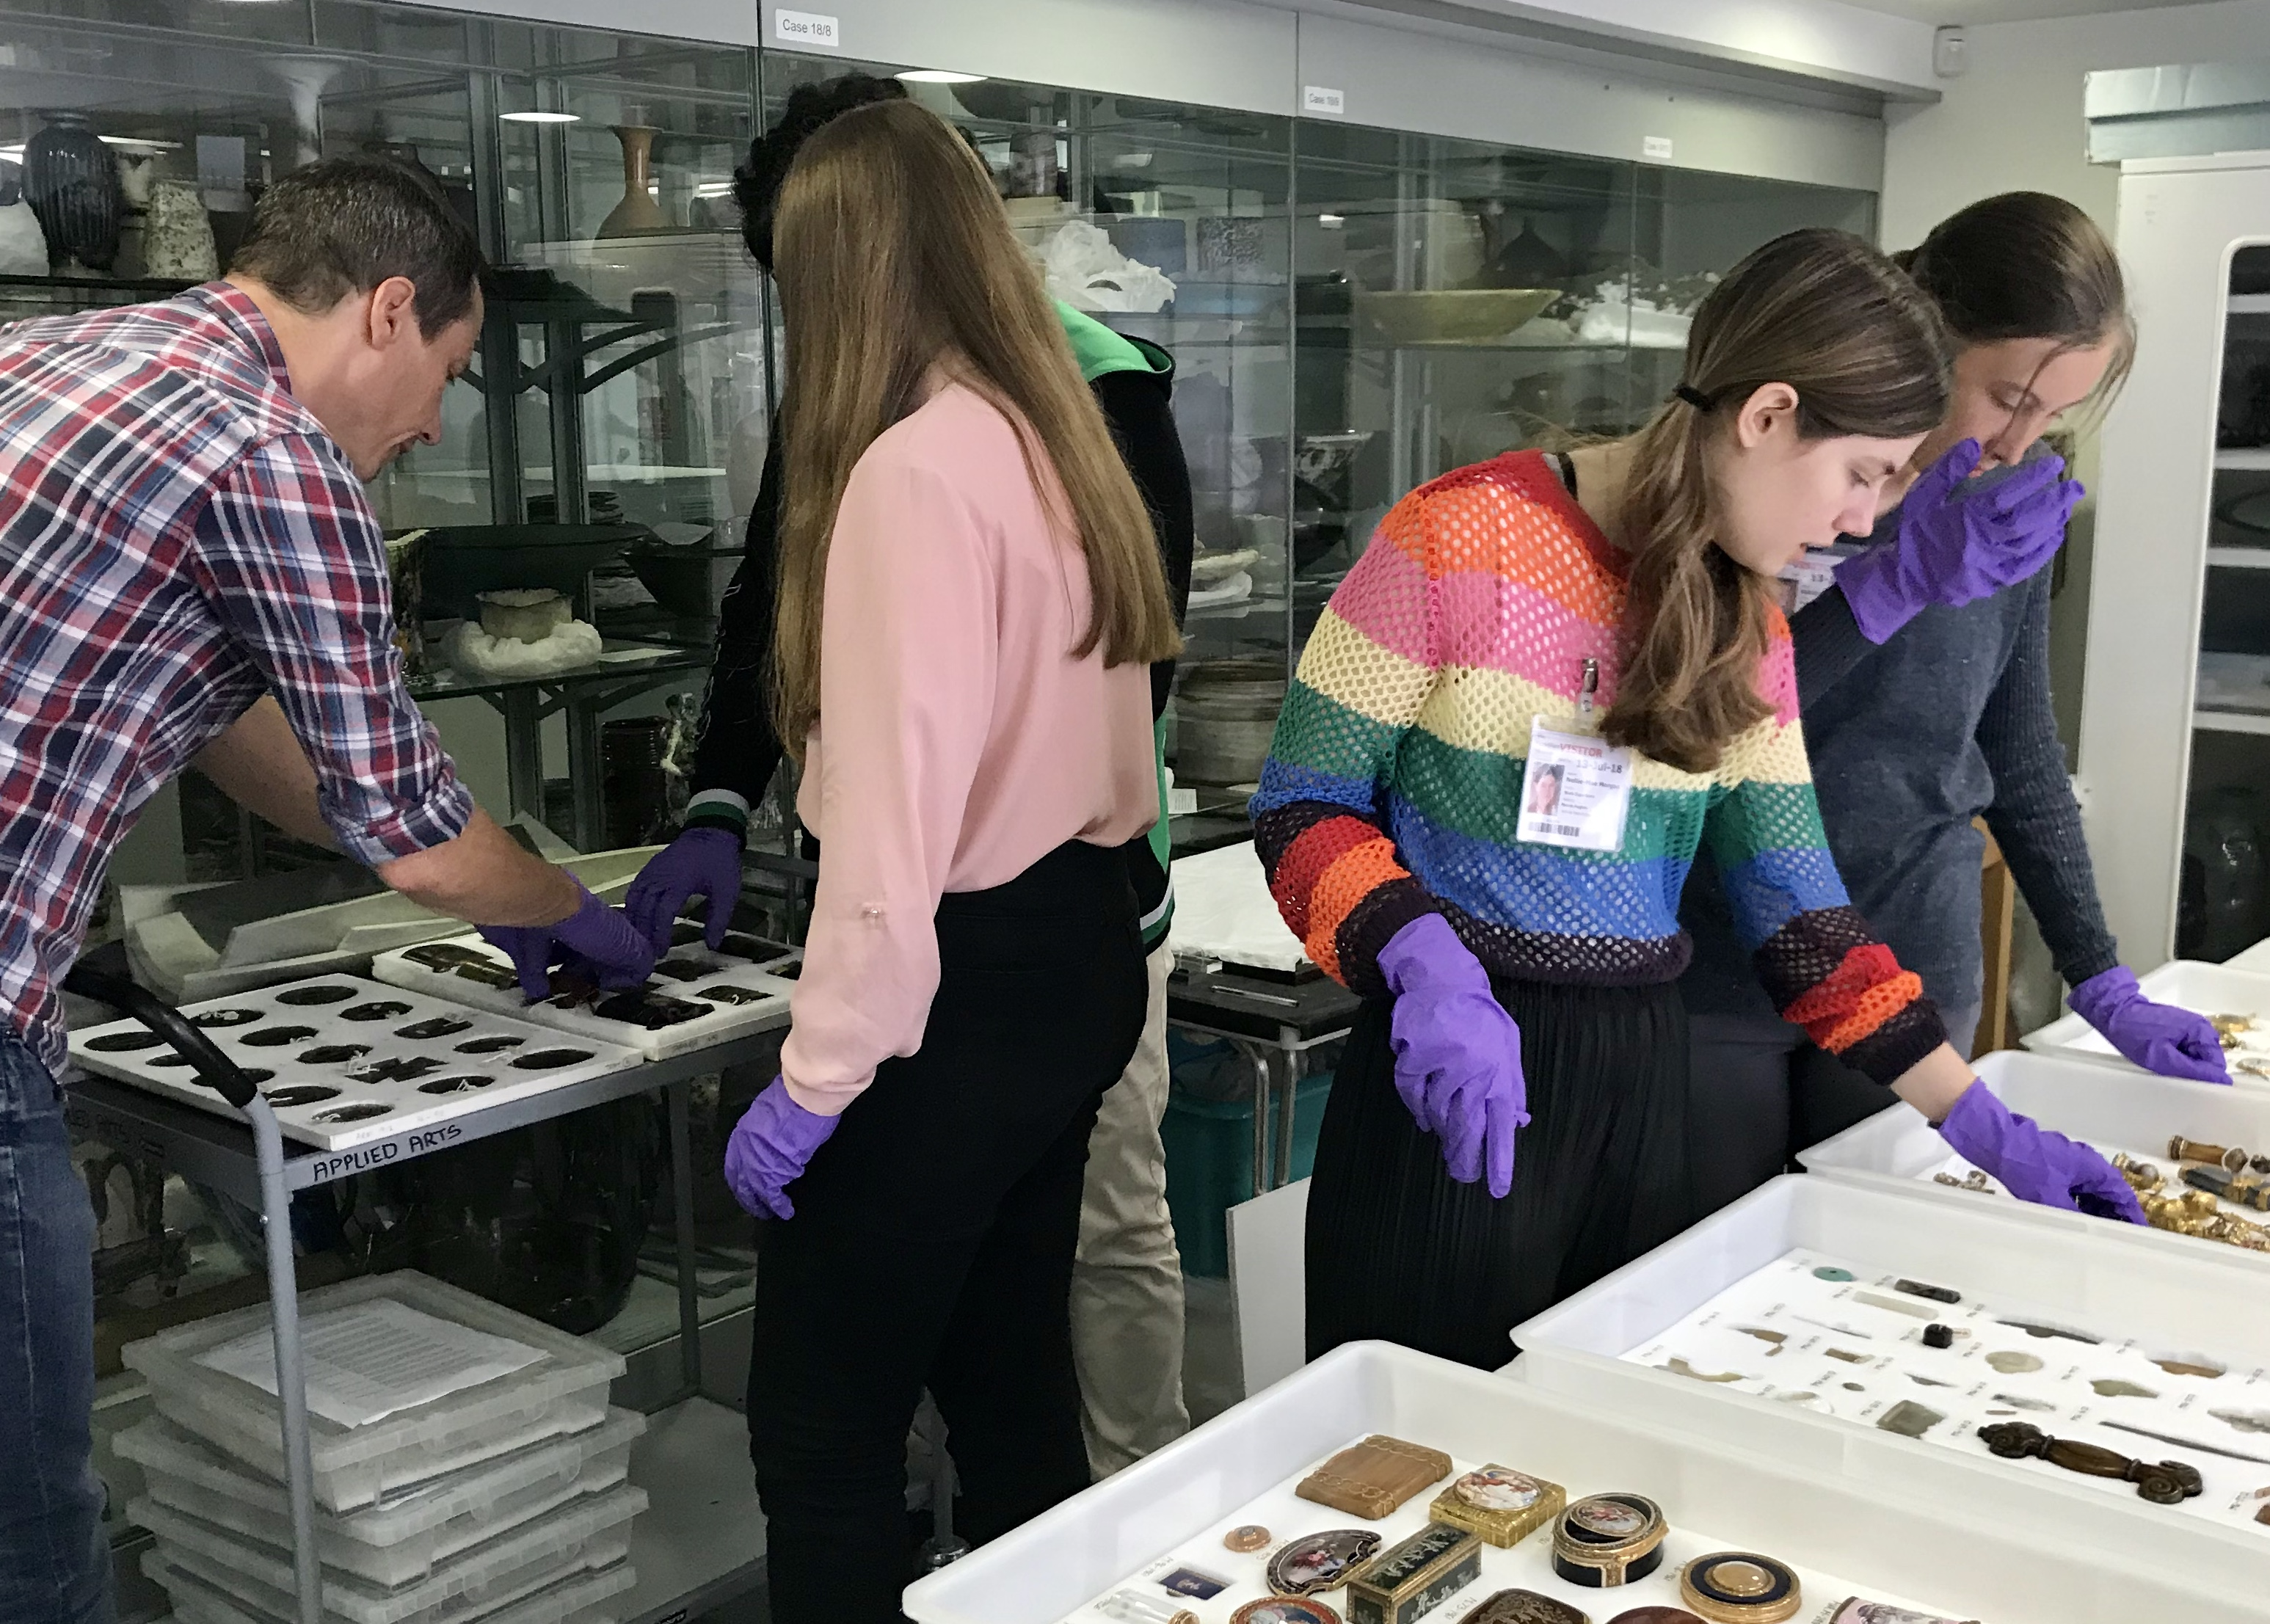 Work experience at the Zoology exploring the collections